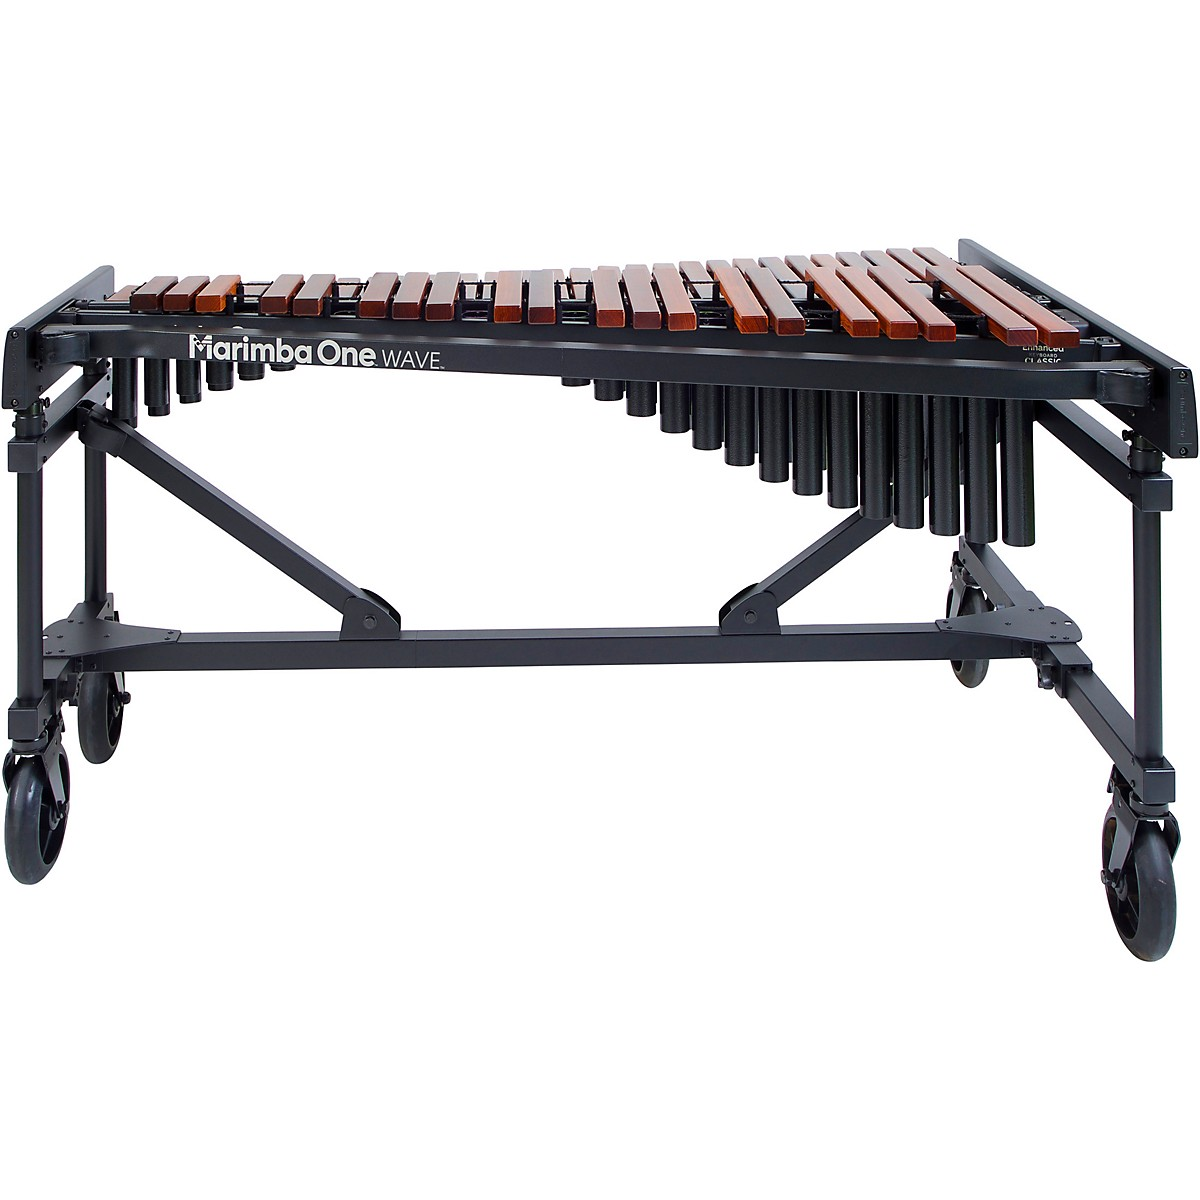 Marimba One M1 Wave Xylophone with Enhanced Keyboard